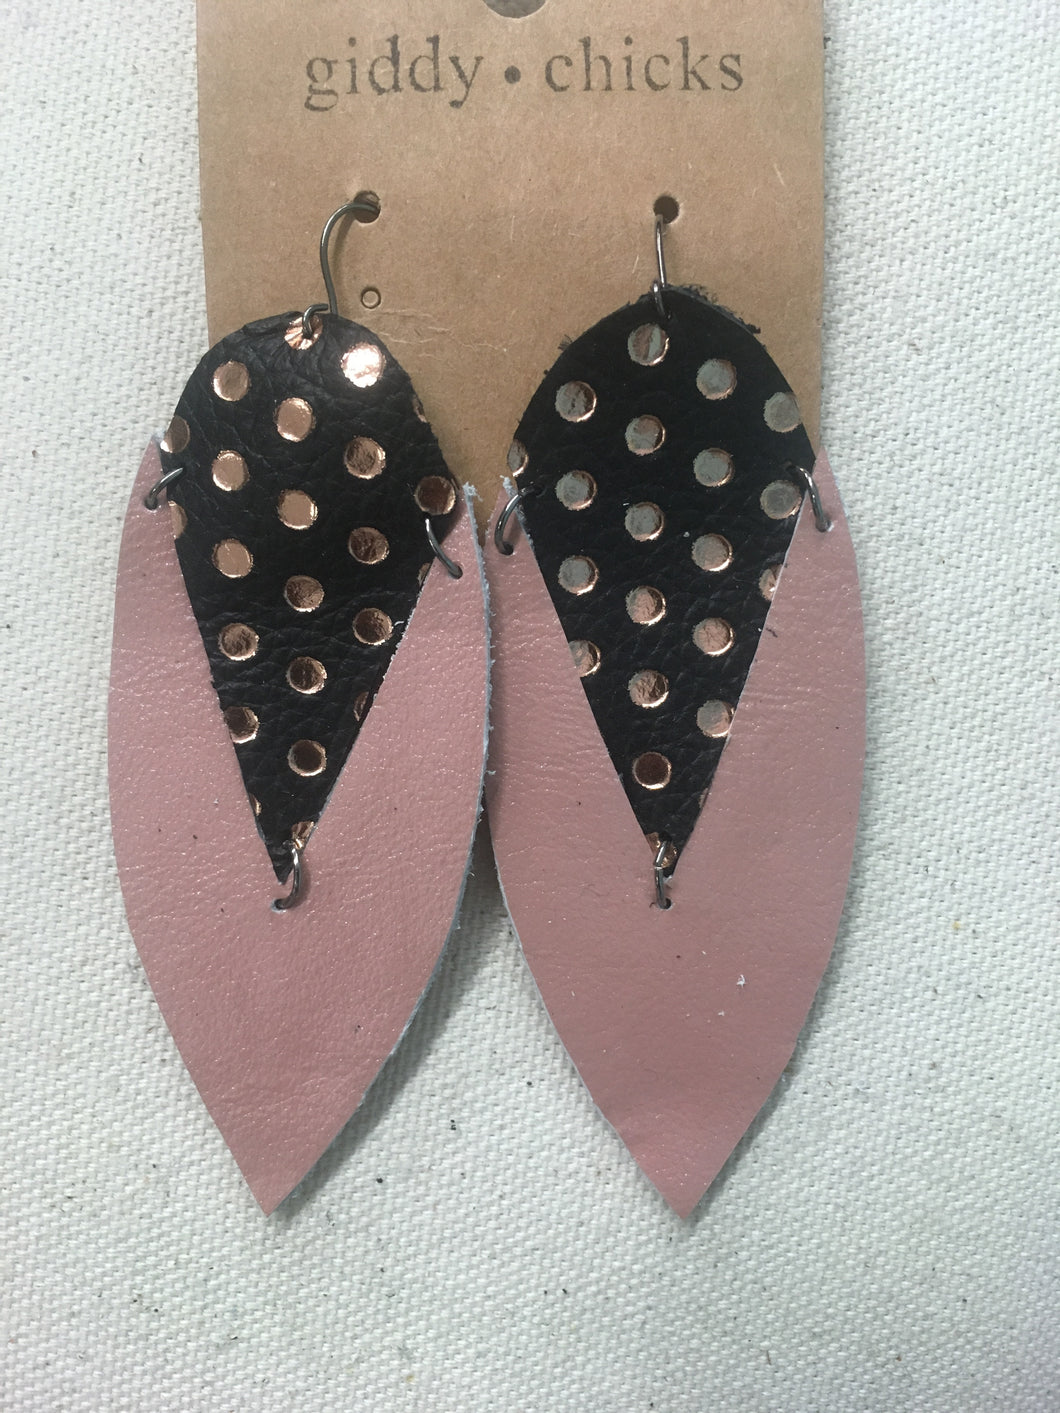 Giddy Chicks Earrings